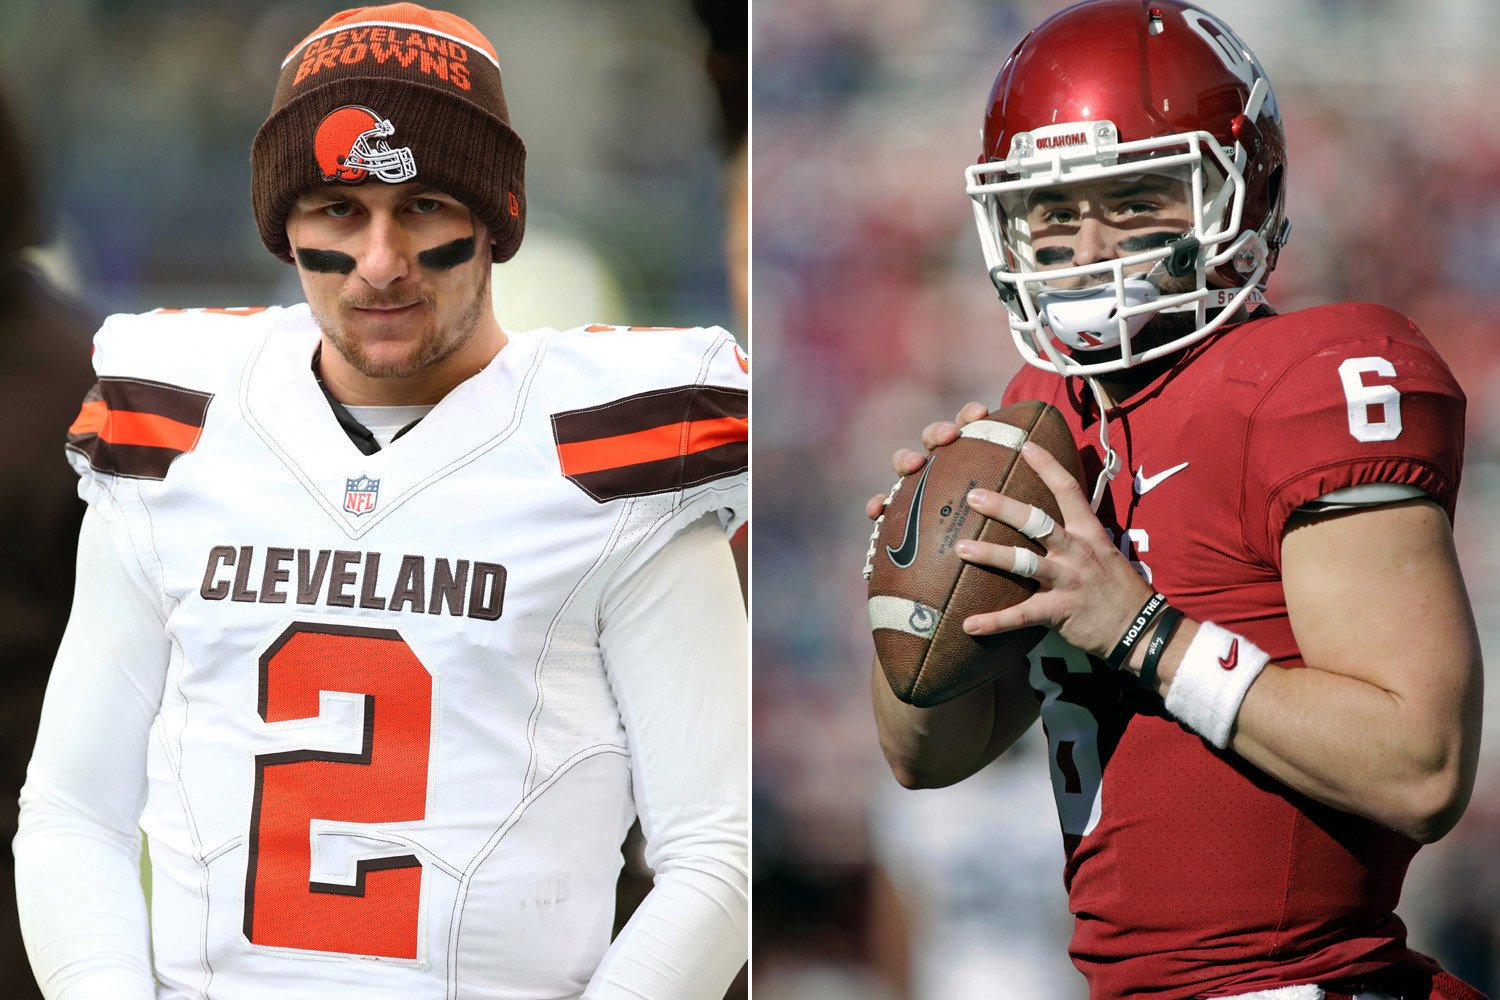 Johnny Manziel weighs in on Baker Mayfield comparisons